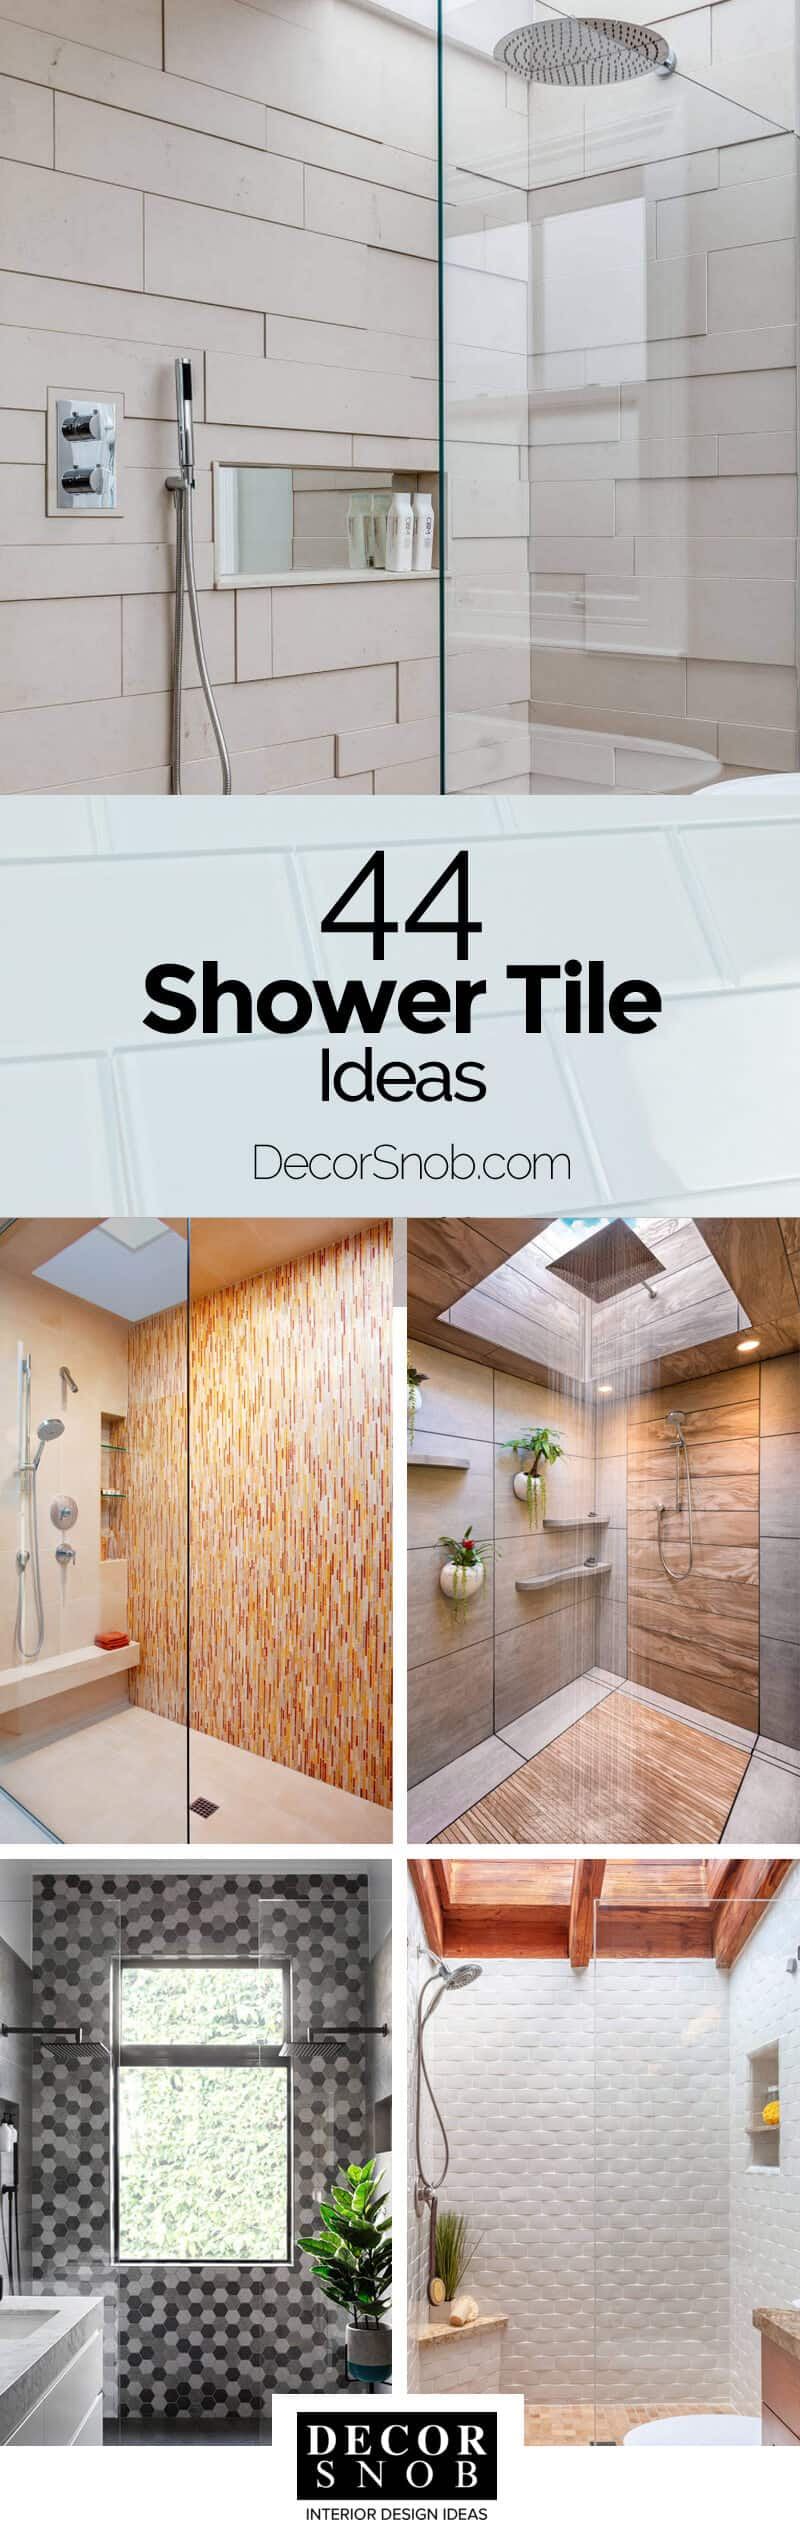 44 Modern Shower Tile Ideas To Make Your Bathroom Amazing